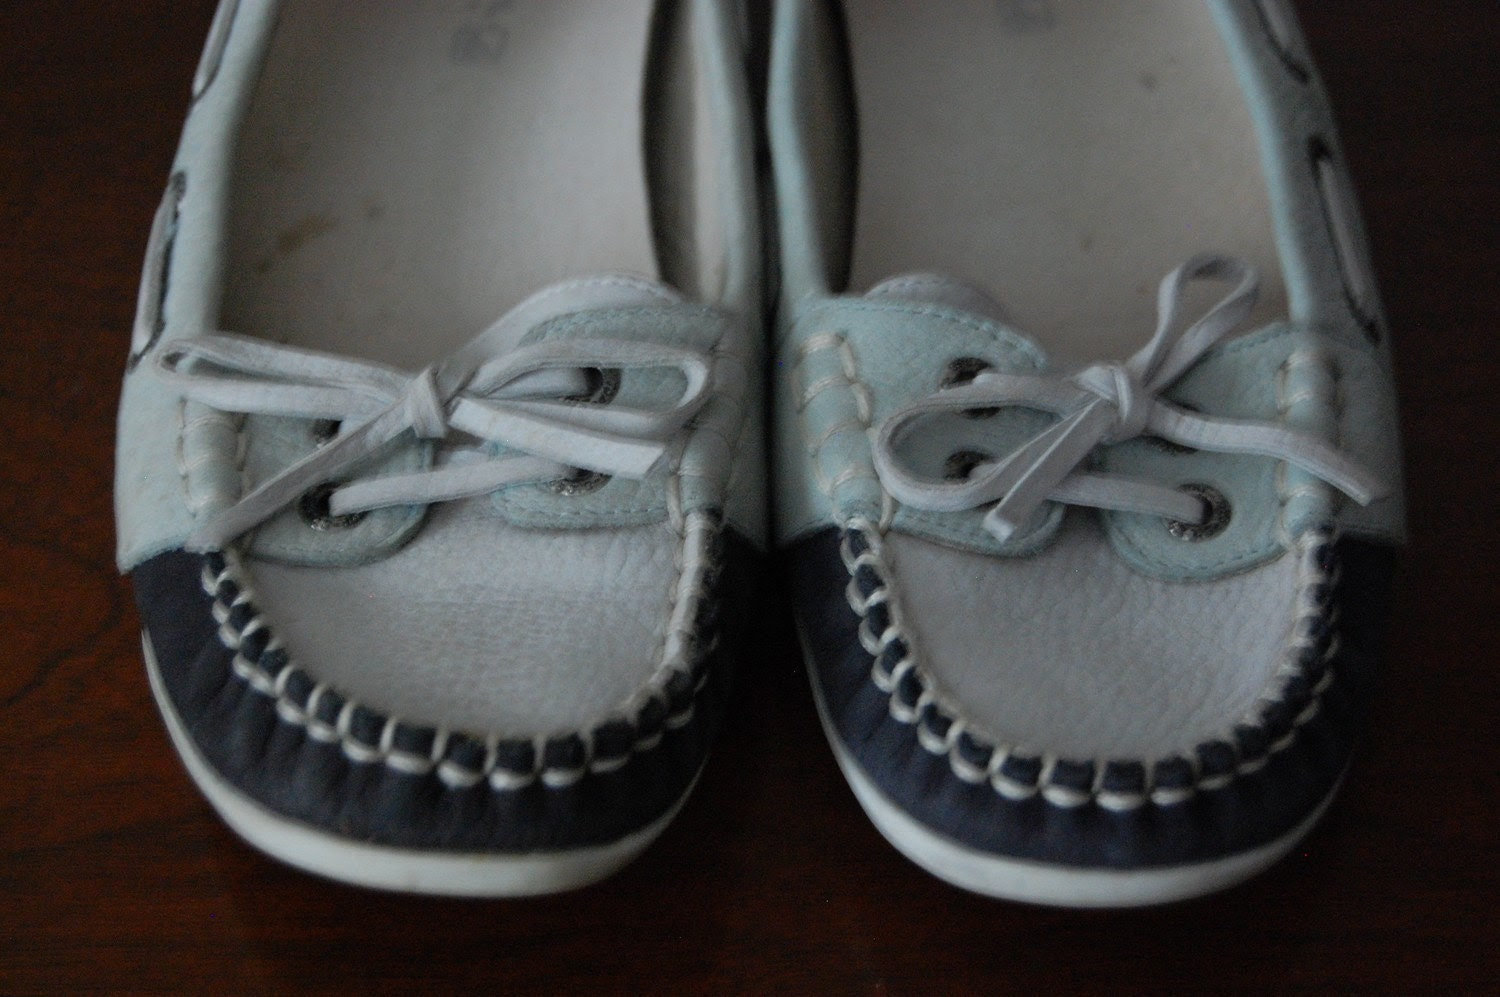 Vintage DOCK ON THE RIVER Sperry Topsiders Boat Shoes SALE